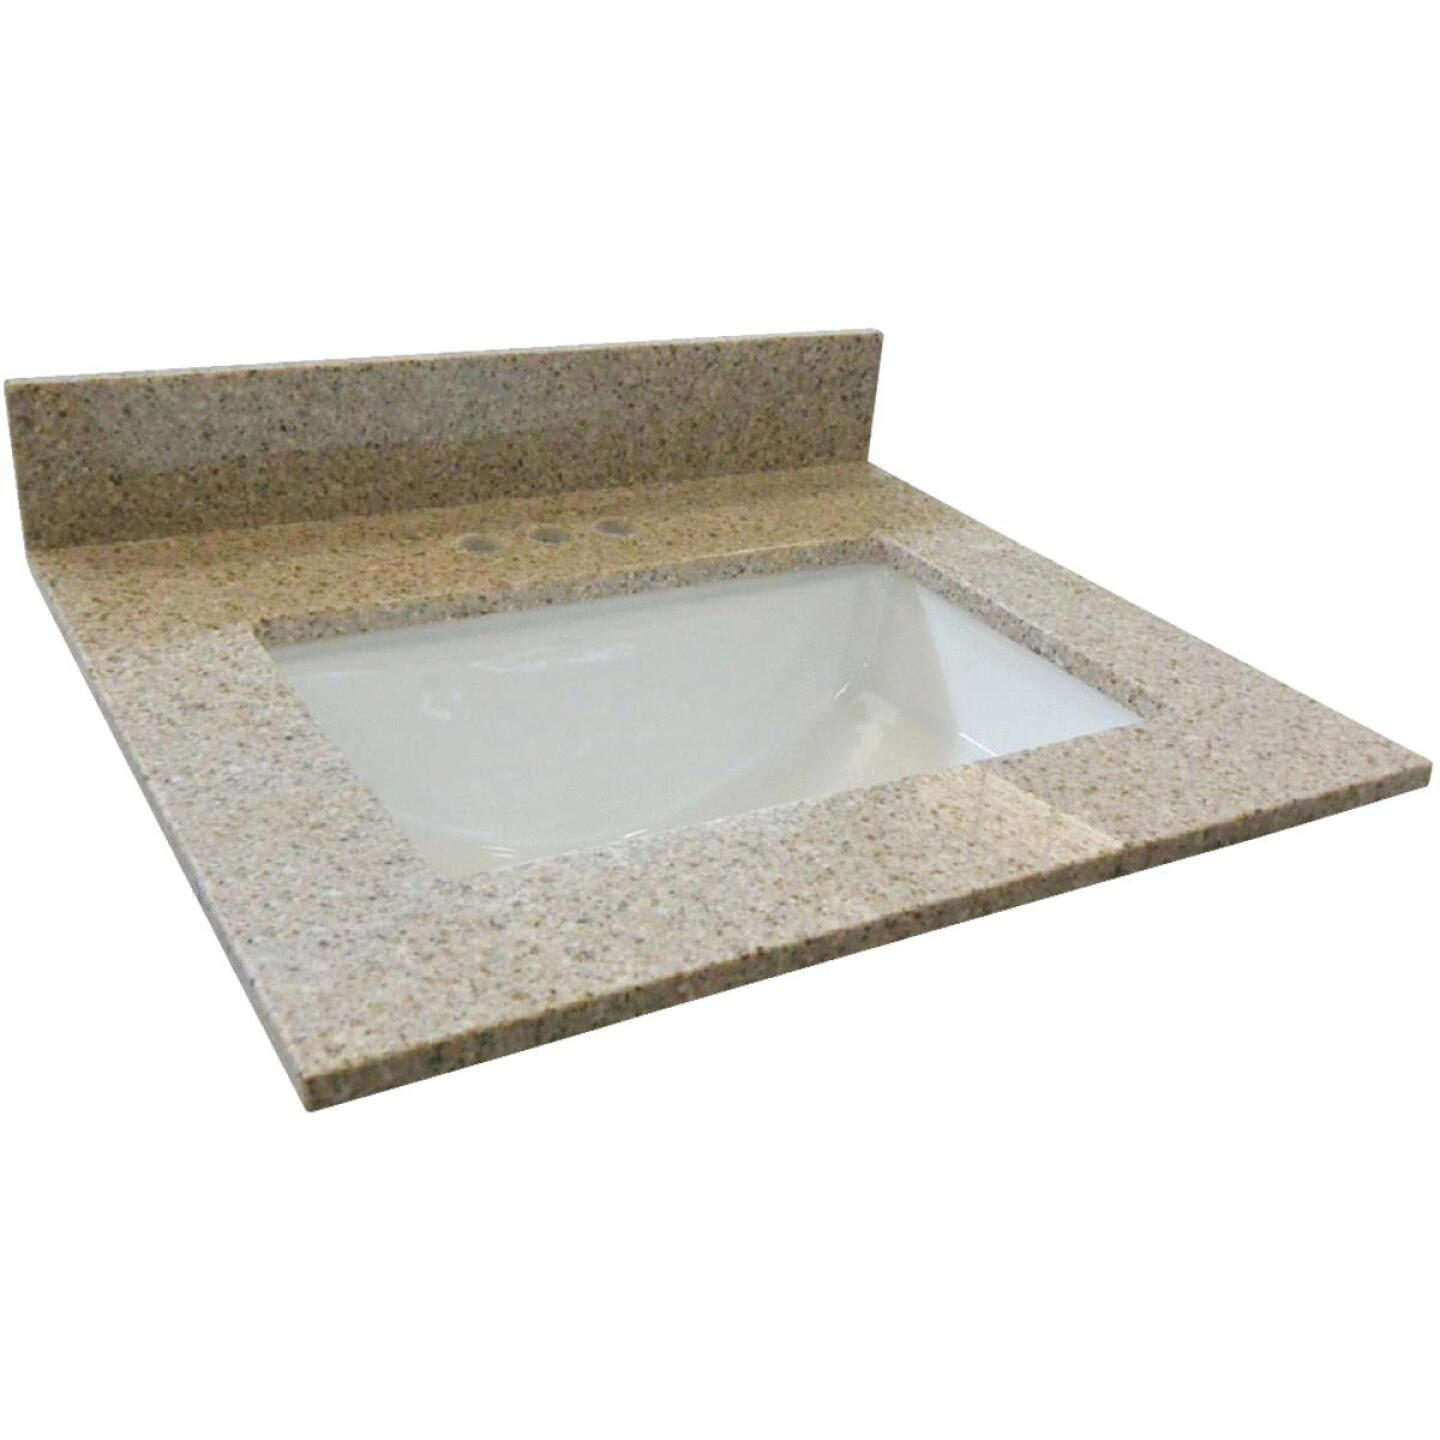 Design House 49 In. W x 22 In. D Golden Sand Granite Vanity Top with Rectangular Bowl Image 1